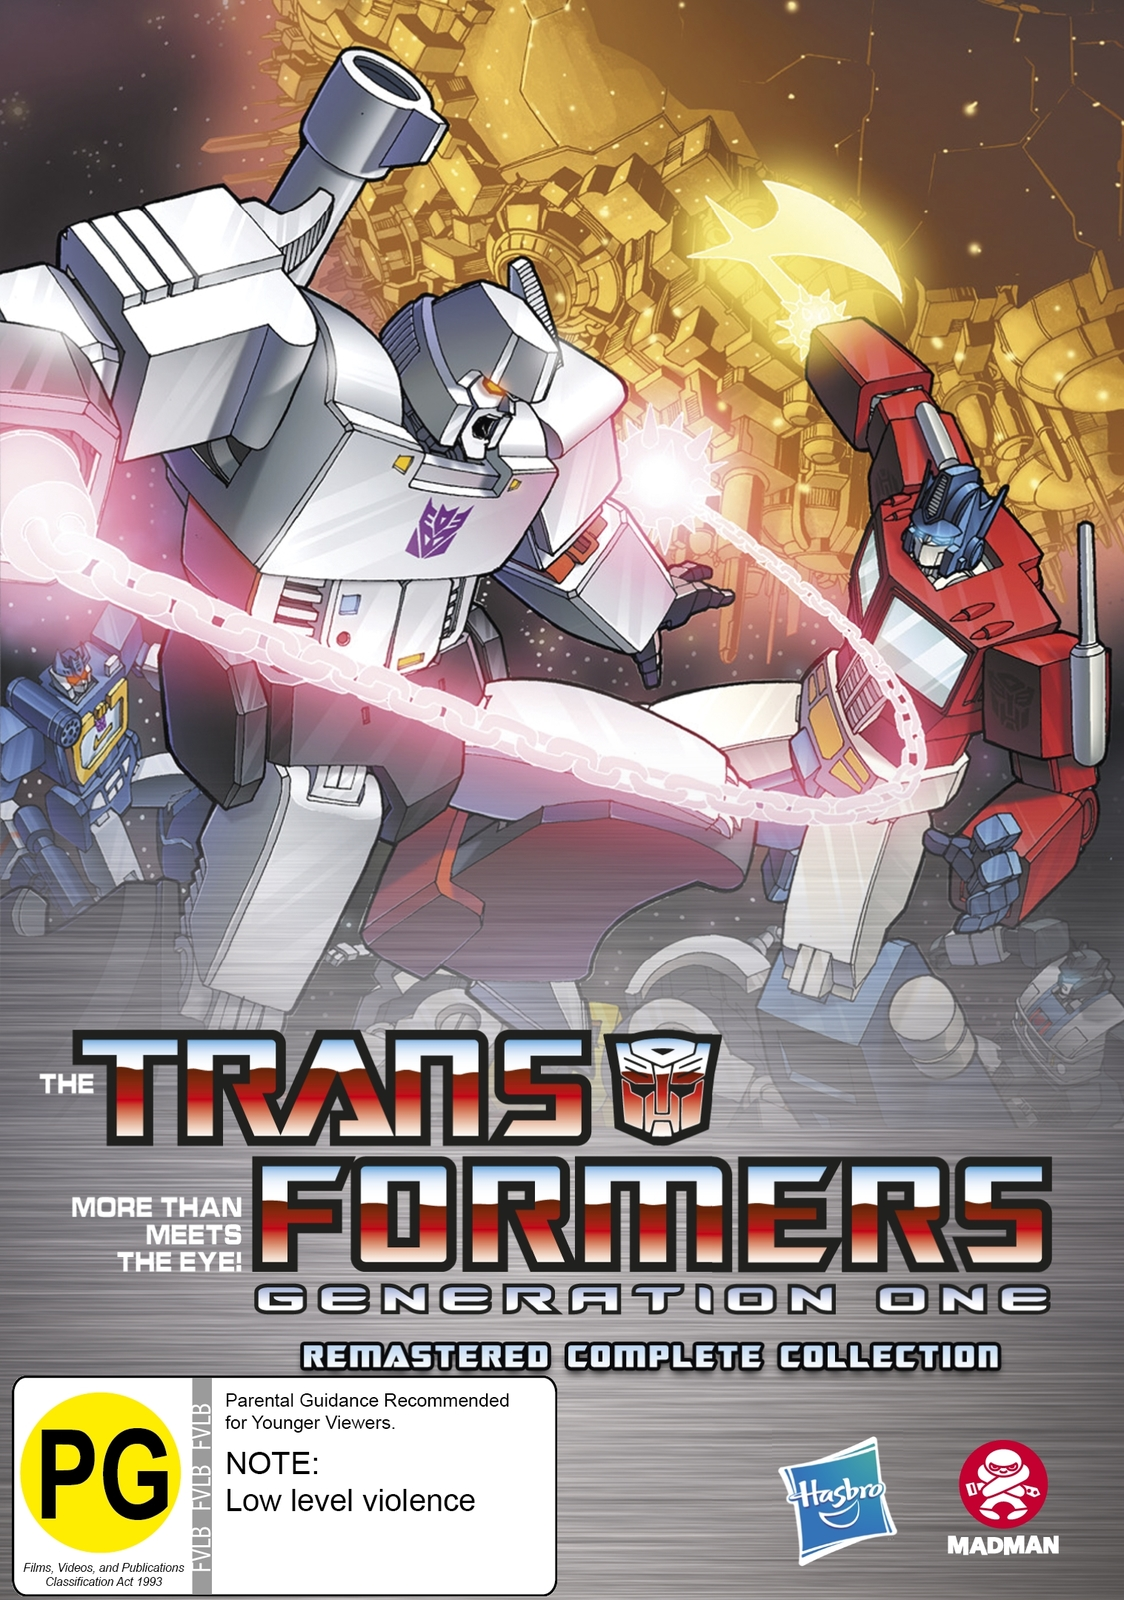 Transformers Generation One Remastered Complete Collection (12 Disc Fatpack) on DVD image